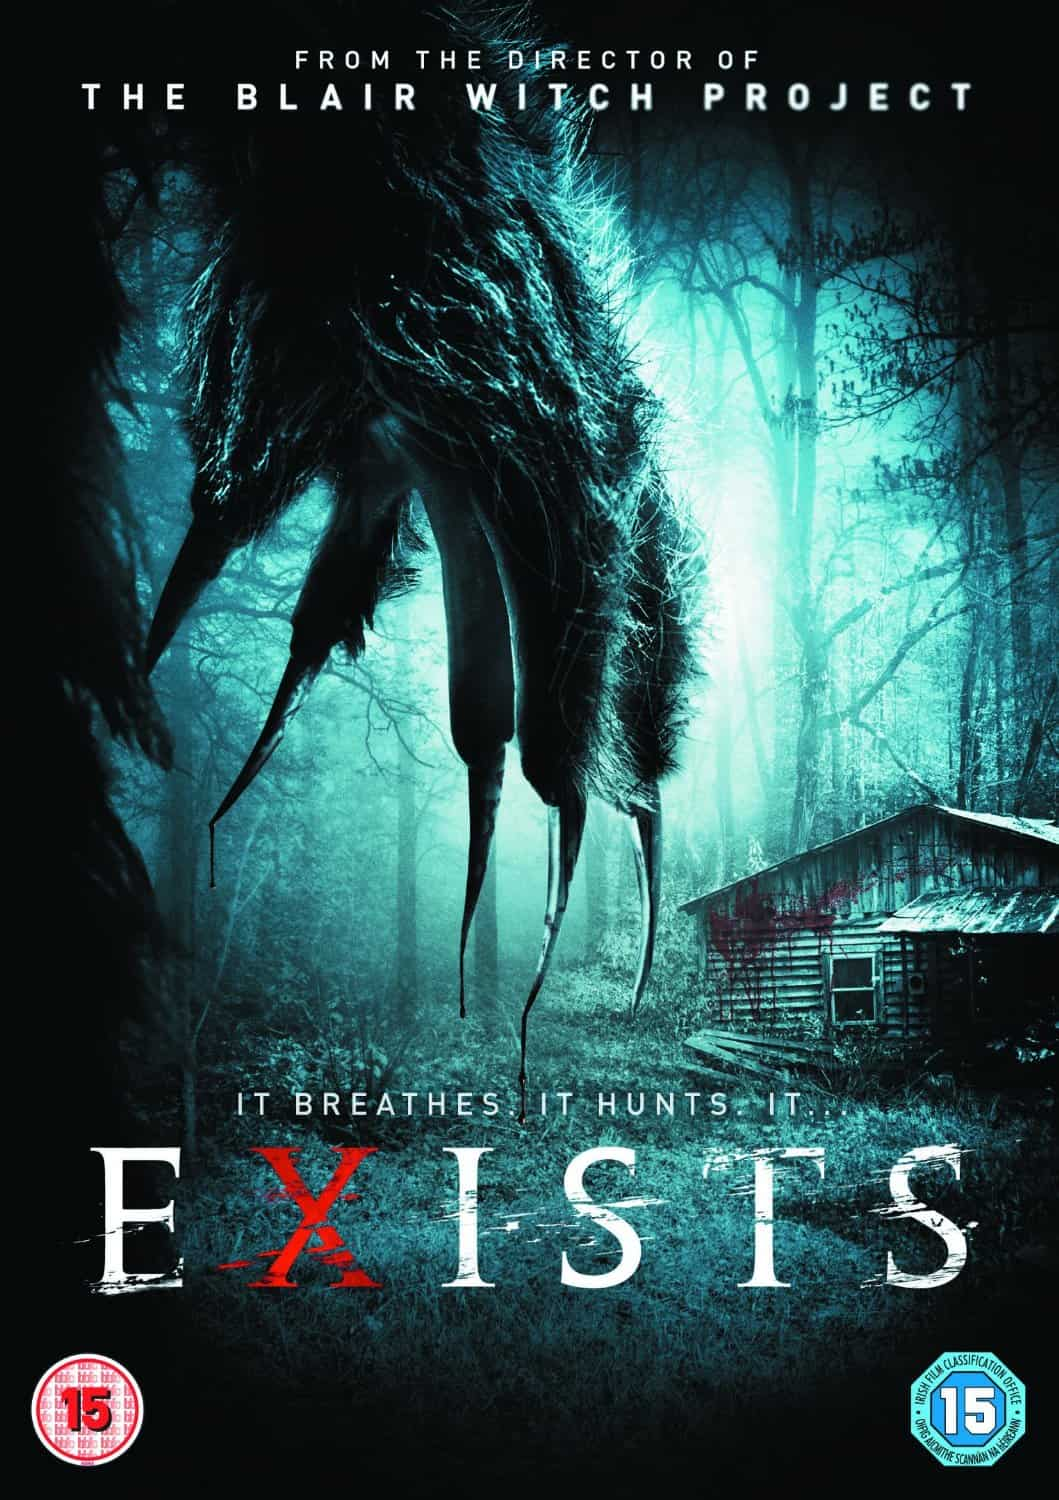 Exists UK DVD Sleeve1 - Bigfoot Caught on Camera! Exclusive UK Clip Proves He Exists...